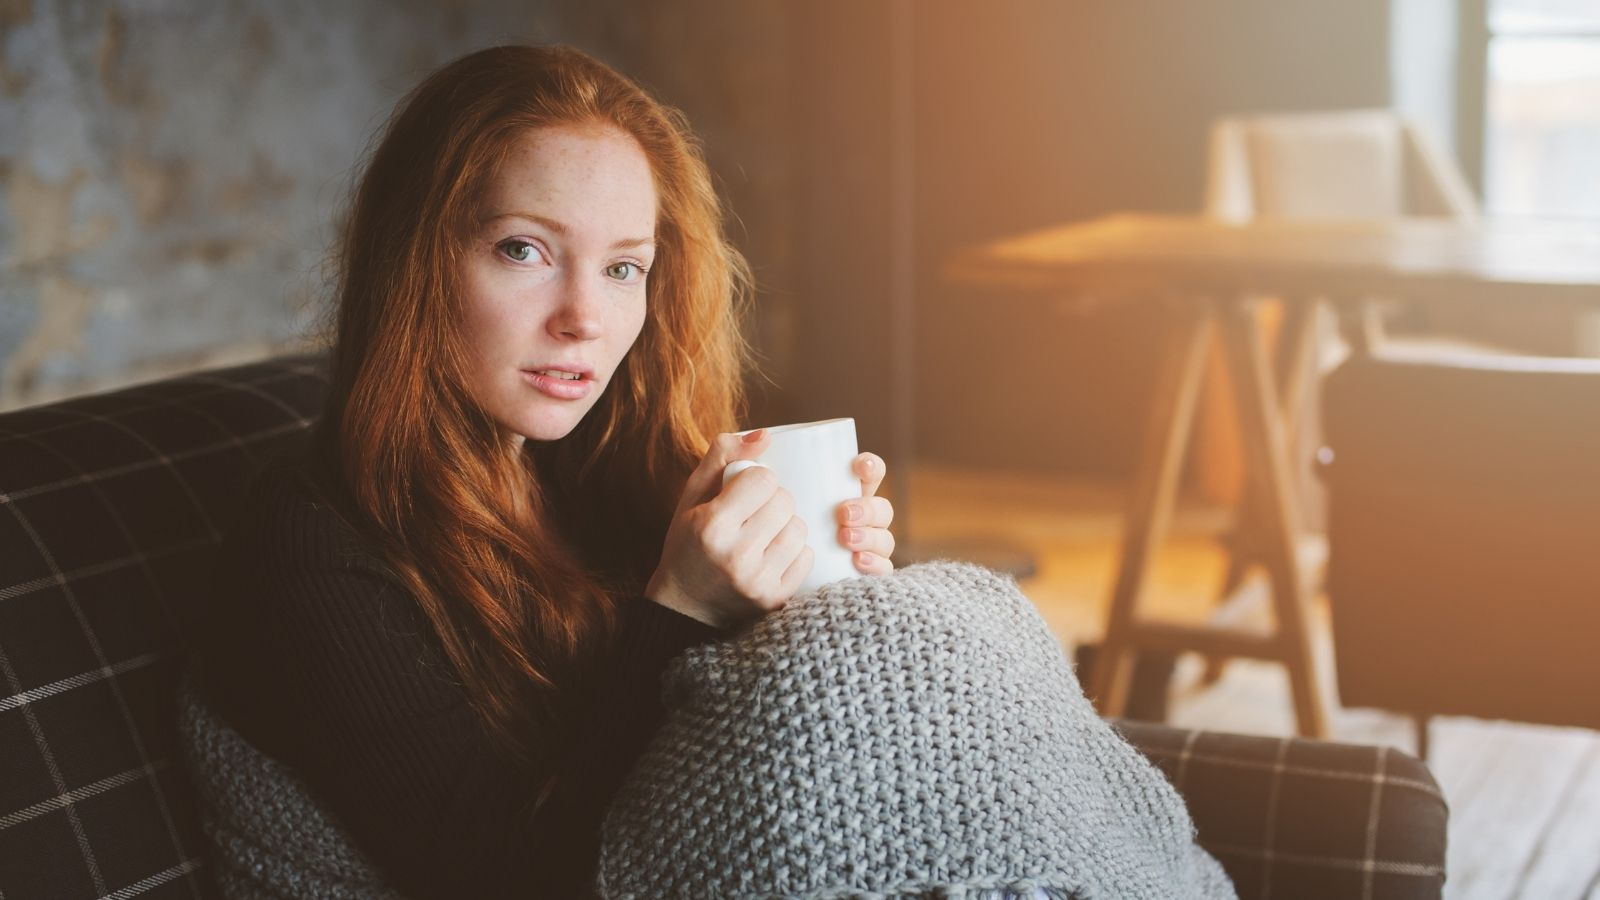 A sick woman drinks herbal tea while covered in a blanket.